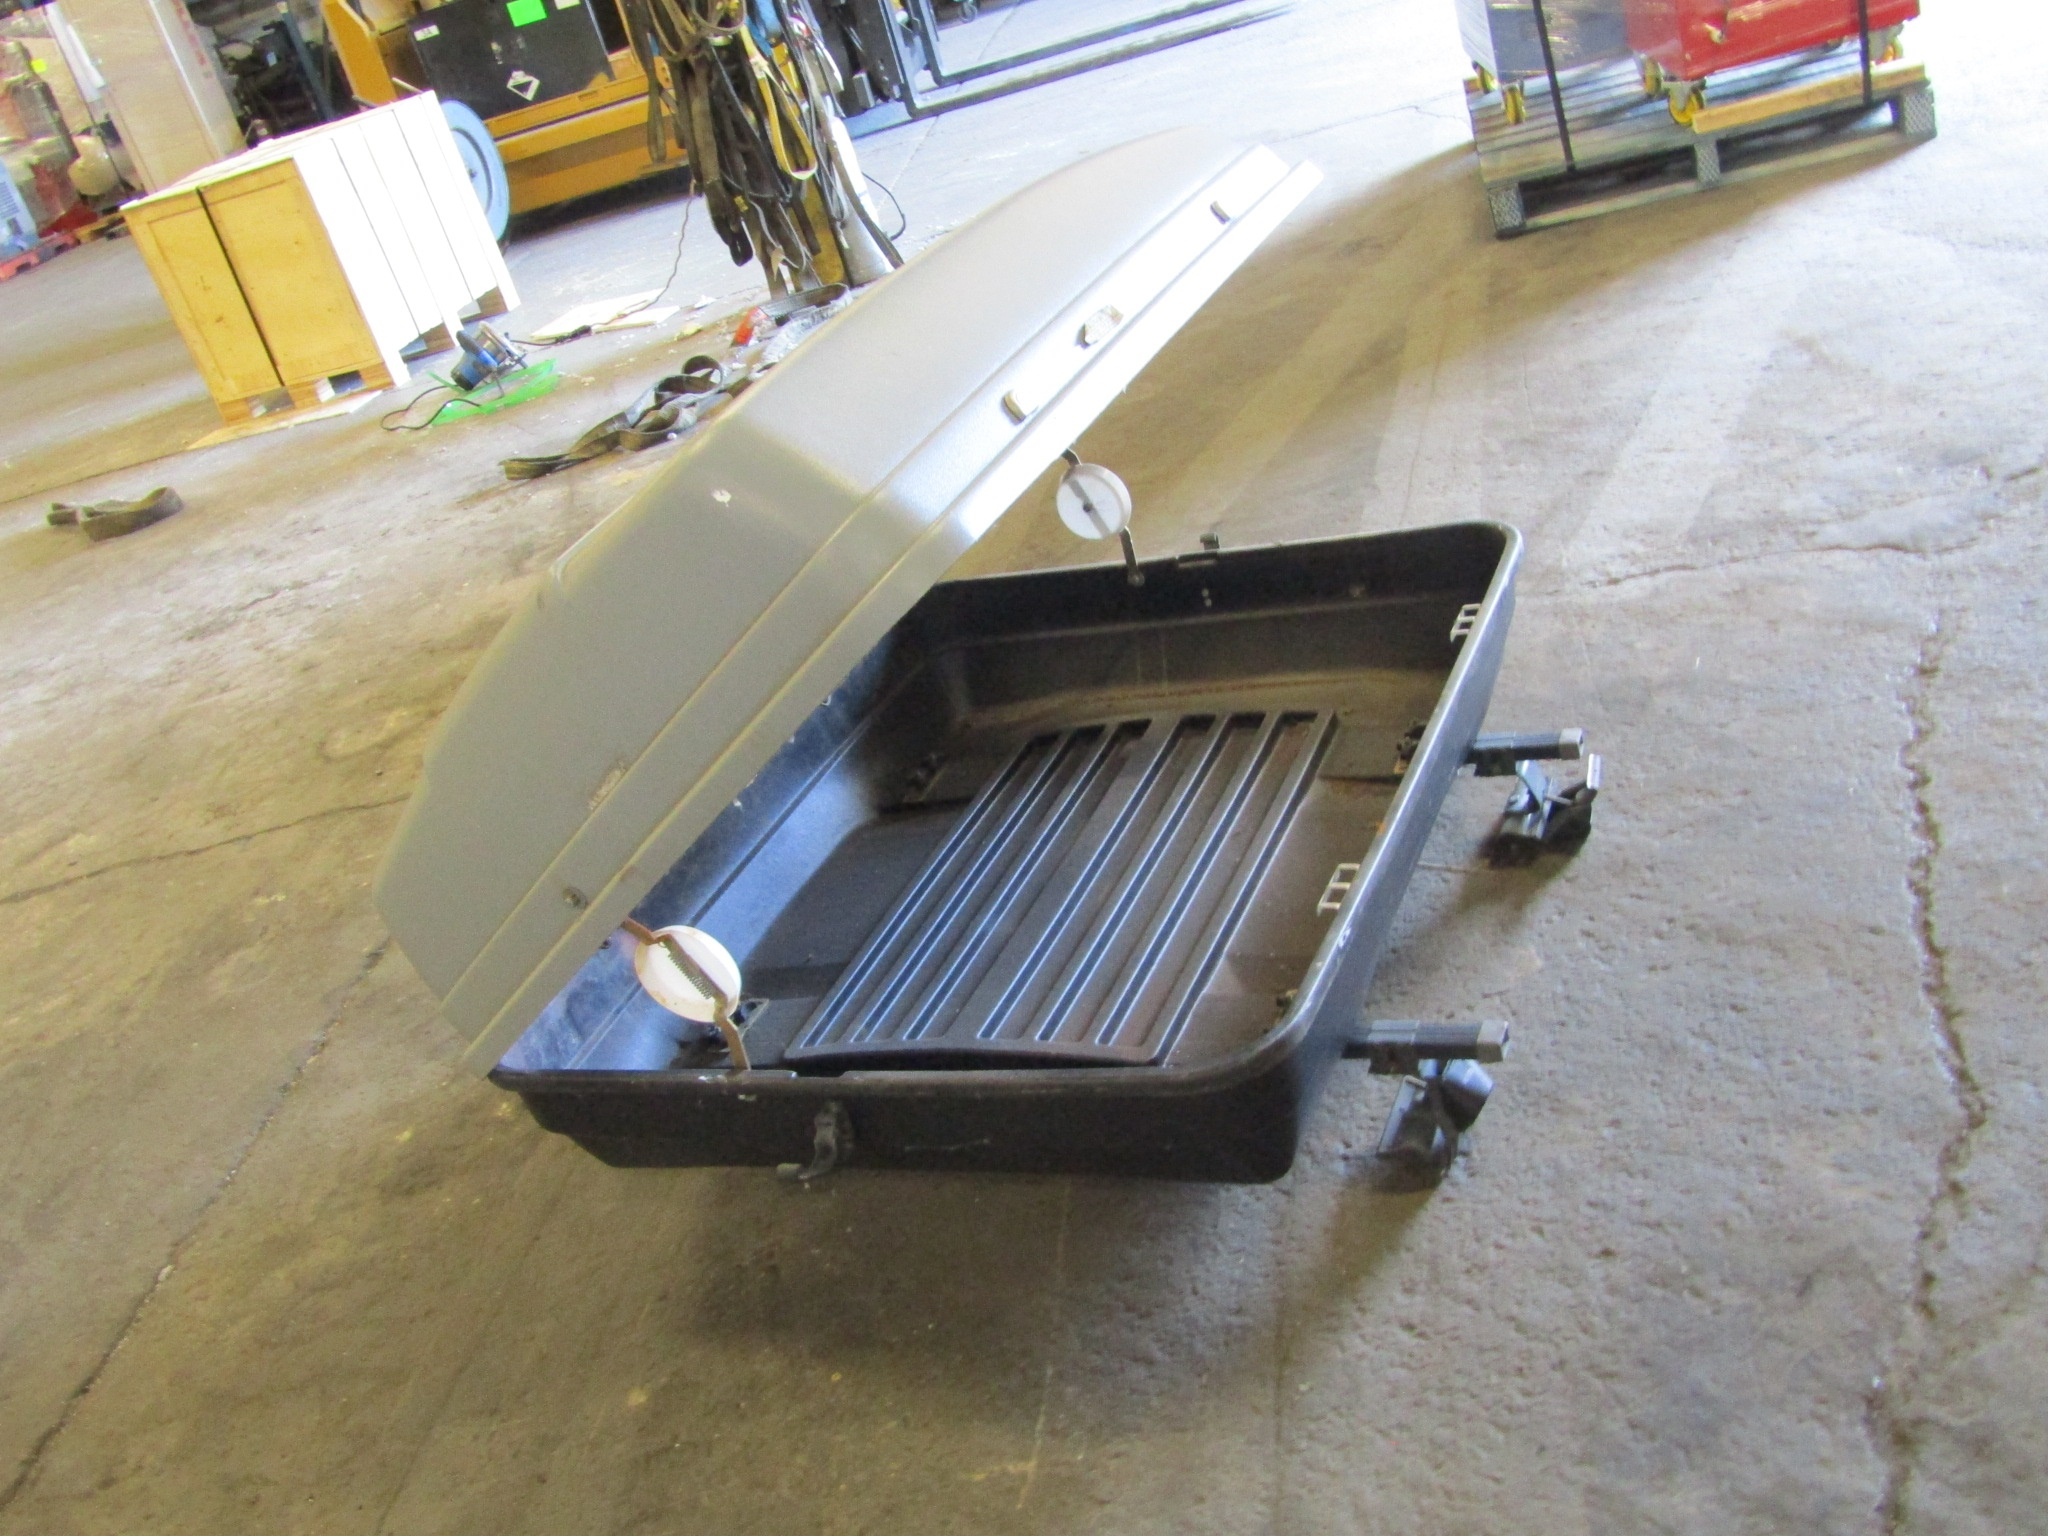 Lot 292 - Roof Rack Car Carrier - extra luggage space on roof in enclosed case